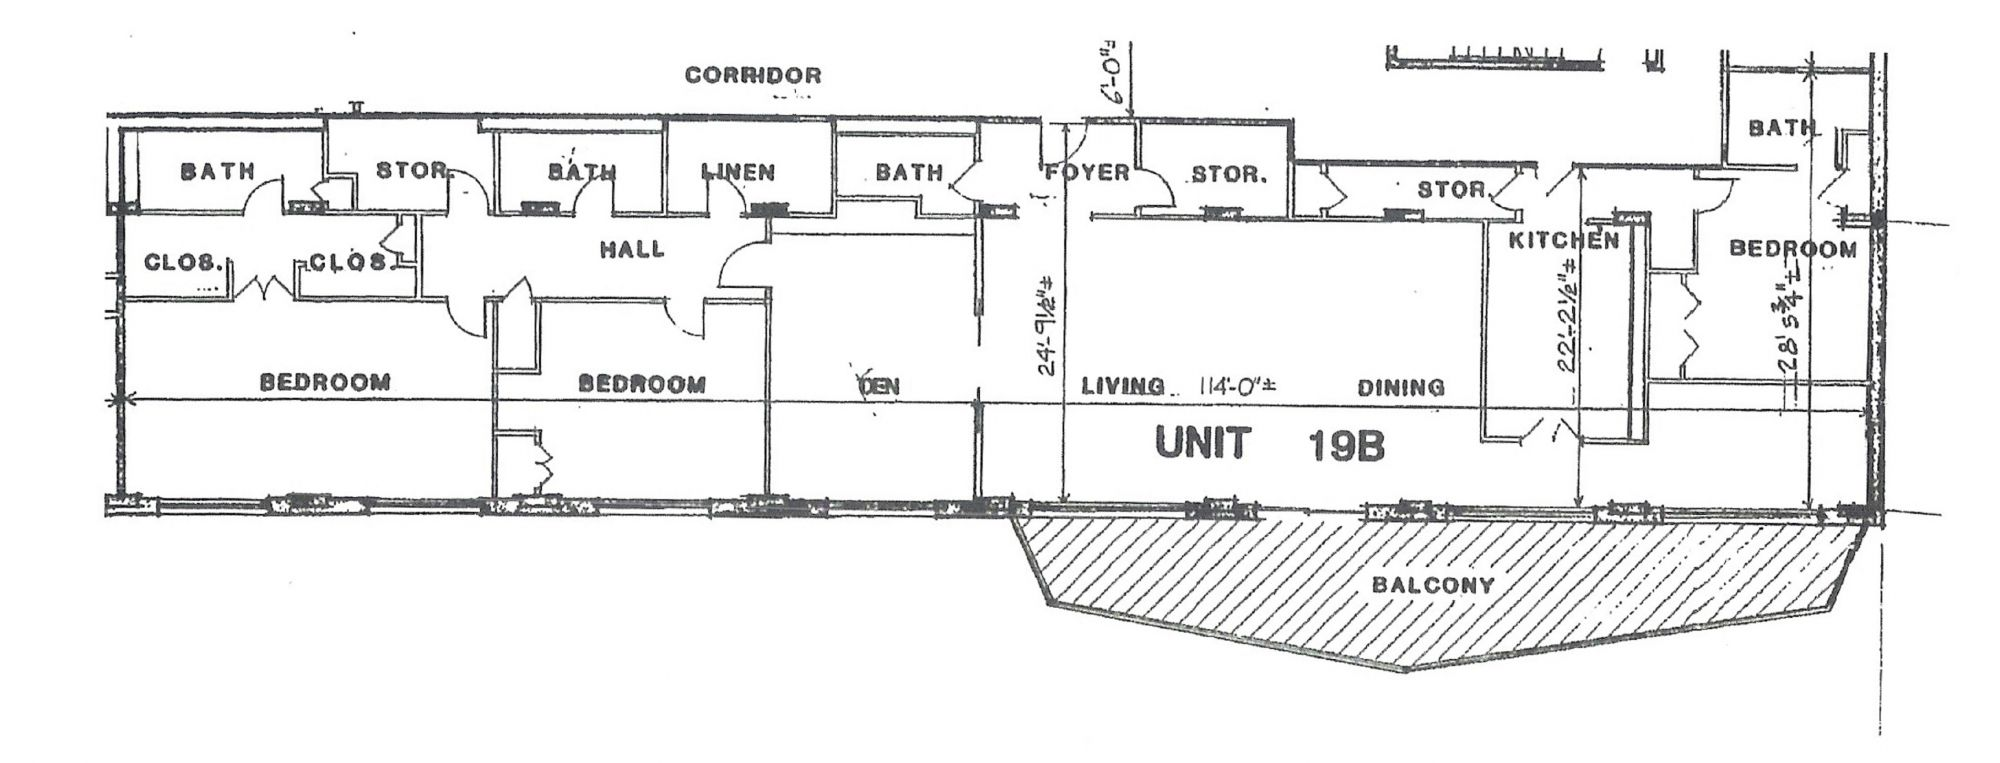 Penthouse Unit 19B Floor Plan